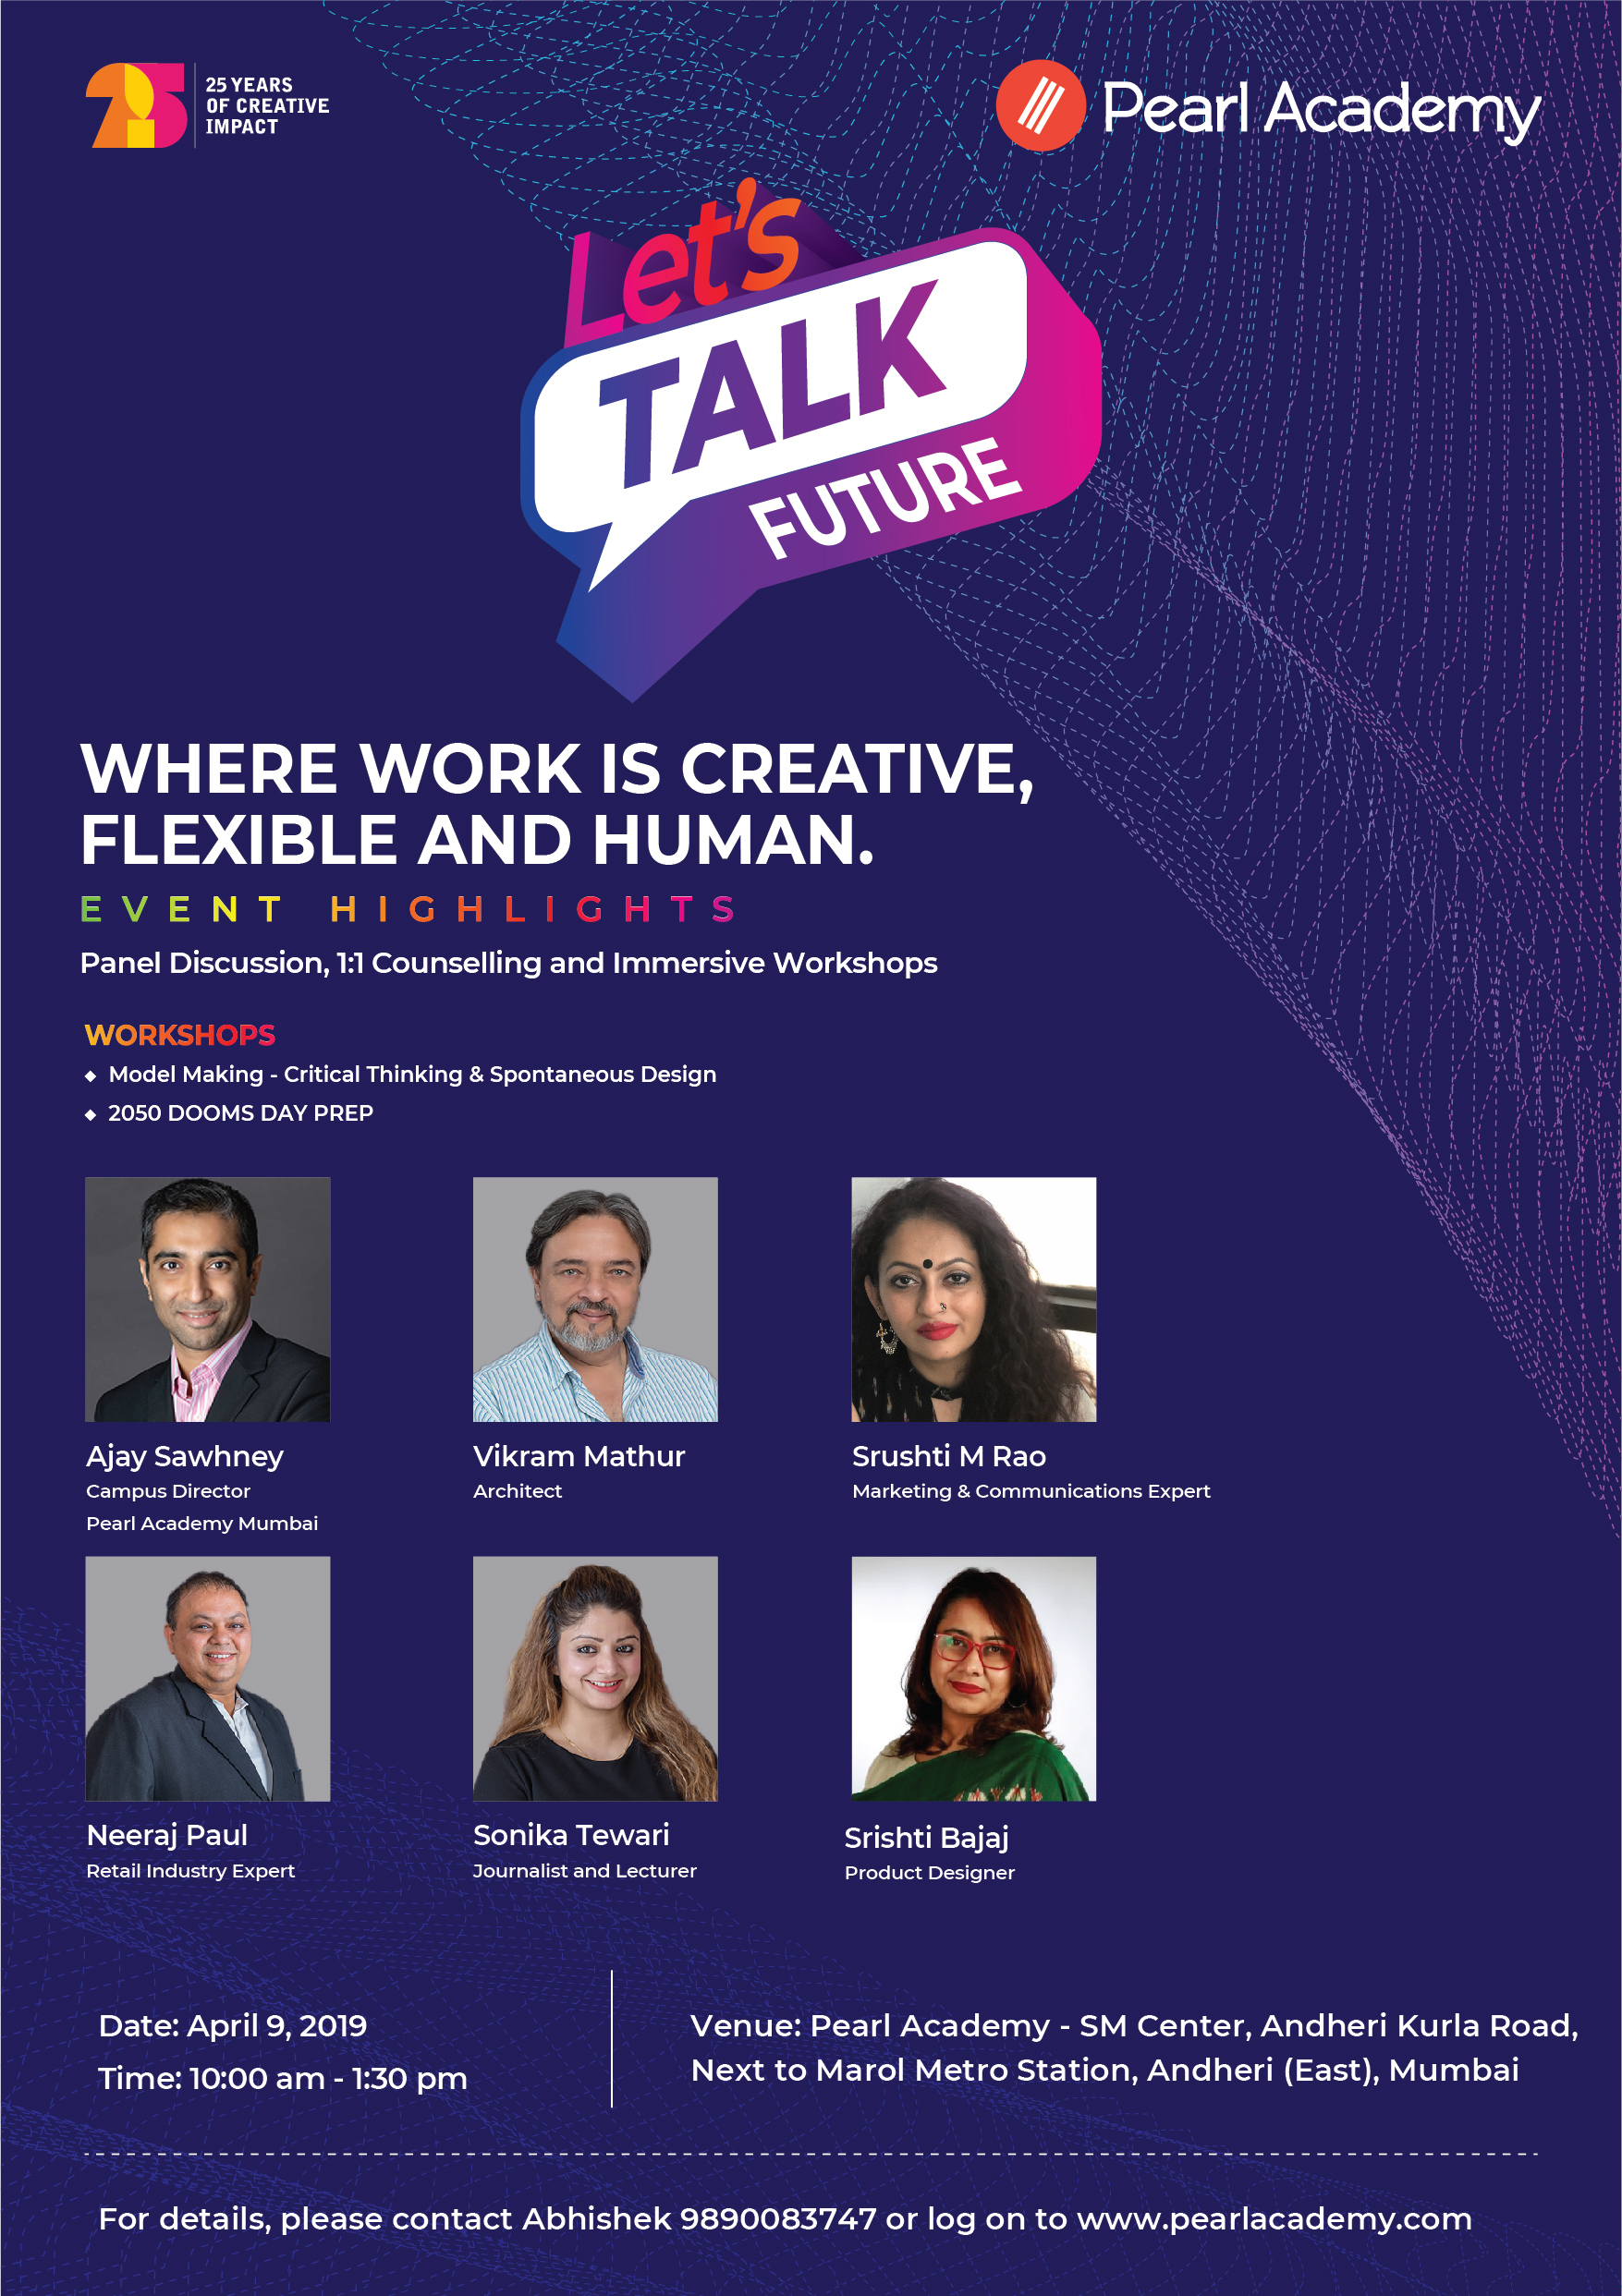 Let's Talk Future - Mumbai